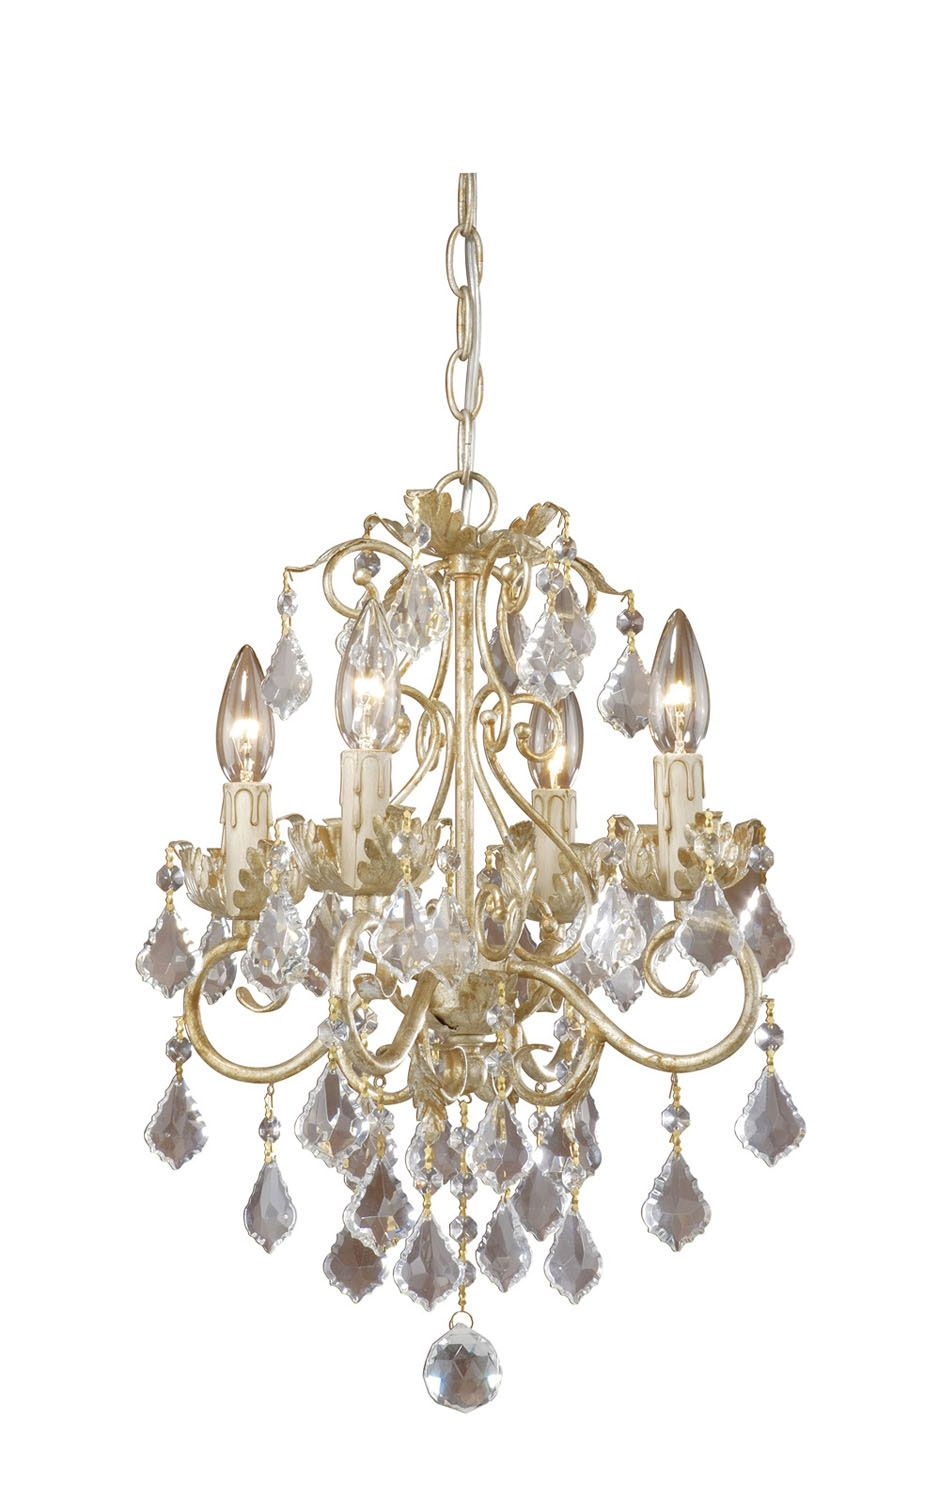 Newcastle 4l dual mount mini chandelier or semi flush mount gilded newcastle 4l dual mount mini chandelier or semi flush mount gilded white gold lightingfixture lighting ceilingfixture chandelier holidaylighting mozeypictures Choice Image